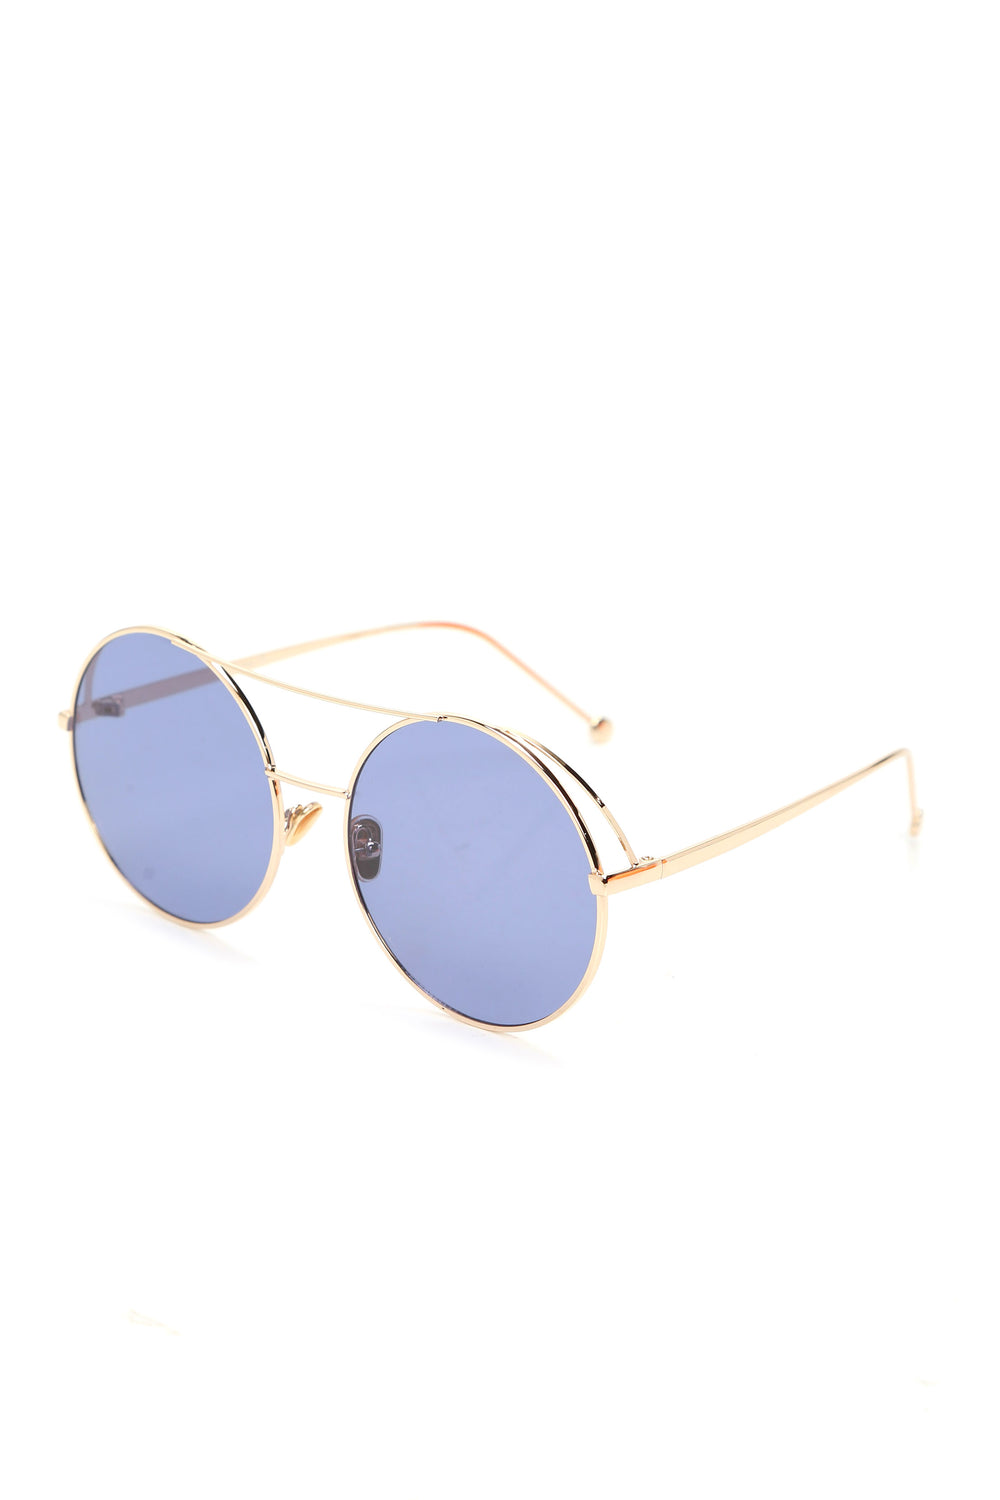 Don't Bumble Me Around Sunglasses - Blue/Gold